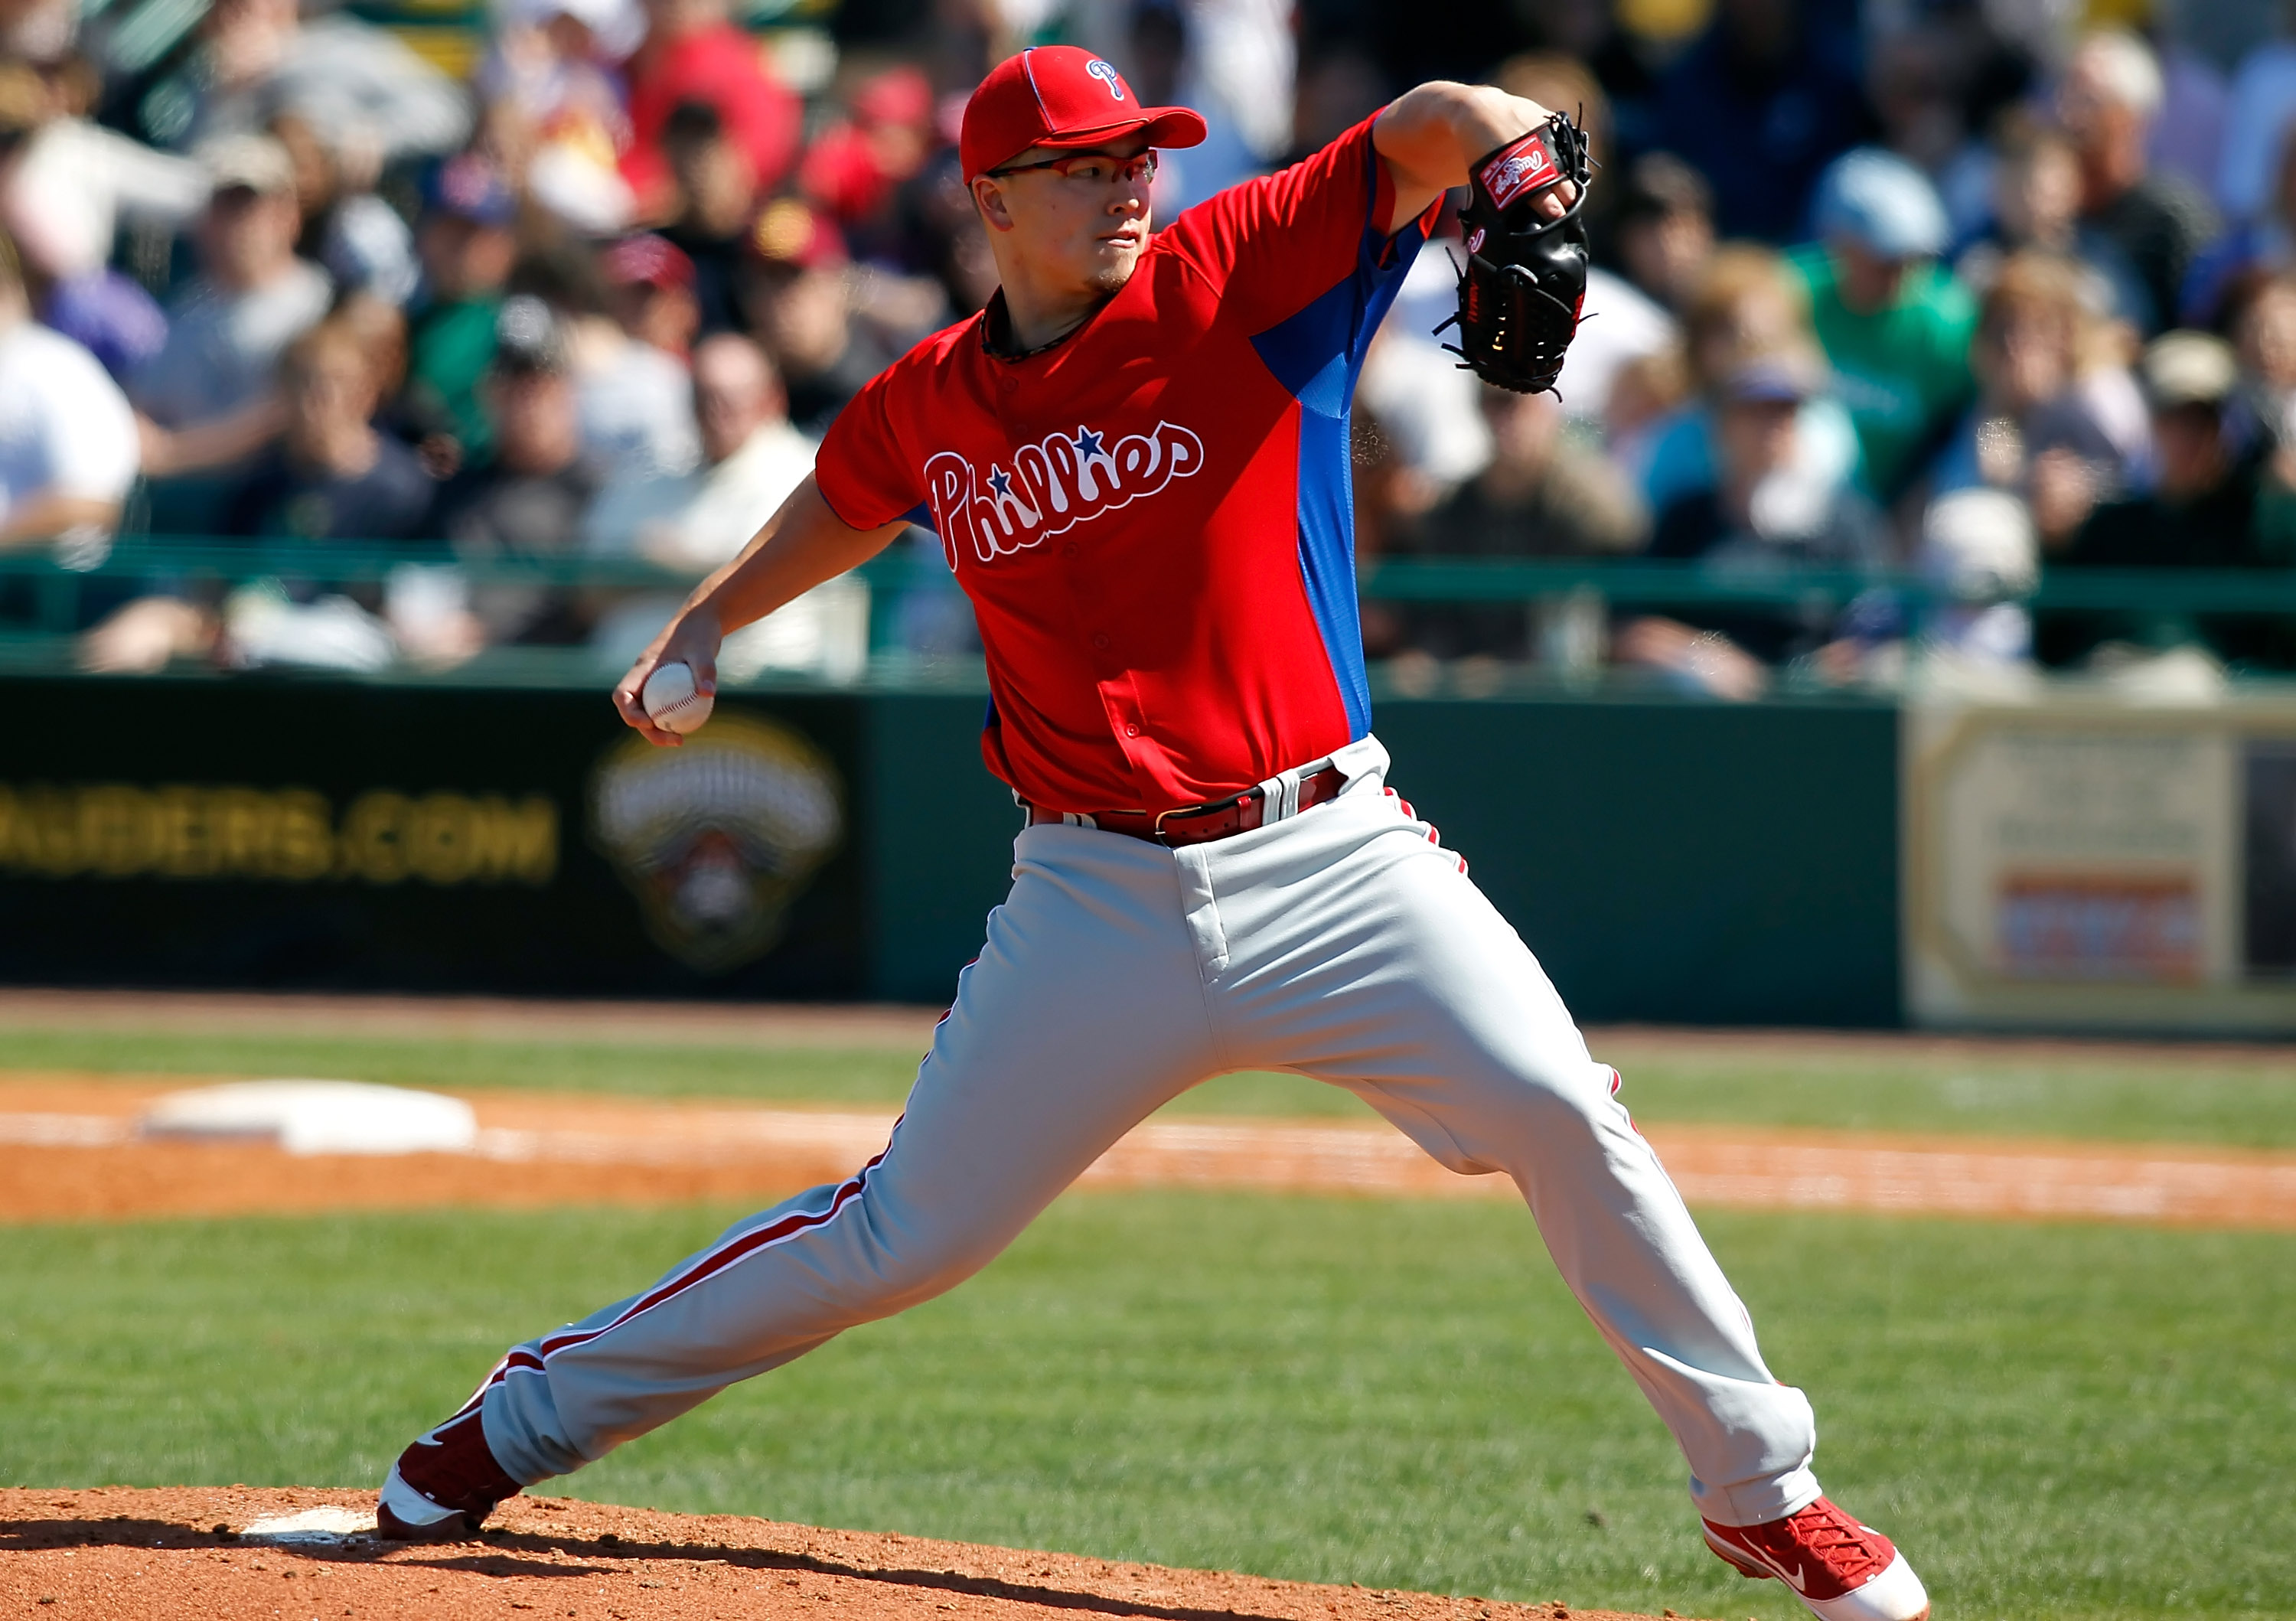 BRADENTON, FL - MARCH 12:  Pitcher Vance Worley #49 of the Philadelphia Phillies pitches against the Pittsburgh Pirates during a Grapefruit League Spring Training Game at McKechnie Field on March 12, 2011 in Bradenton, Florida.  (Photo by J. Meric/Getty I